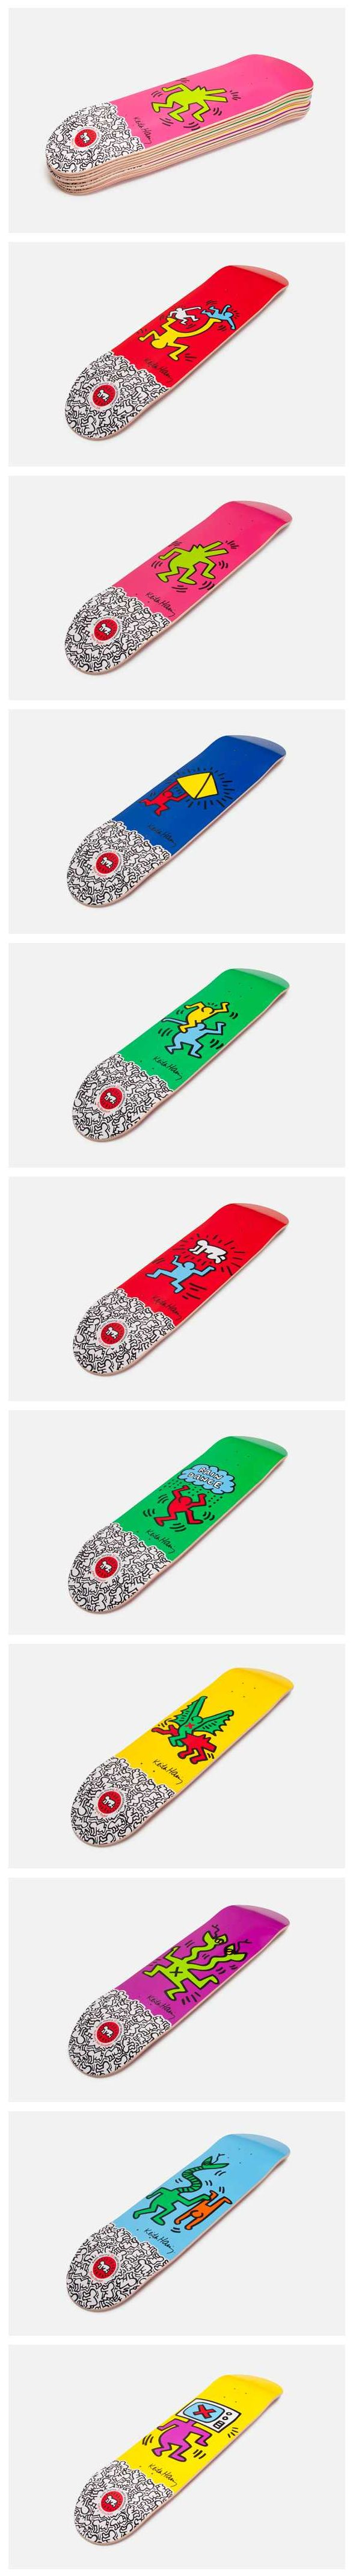 All of a sudden, I want to skateboard.     KEITH HARING X ALIEN WORKSHOP, SKATEBOARD DECK COLLECTION: how could you pick just one?